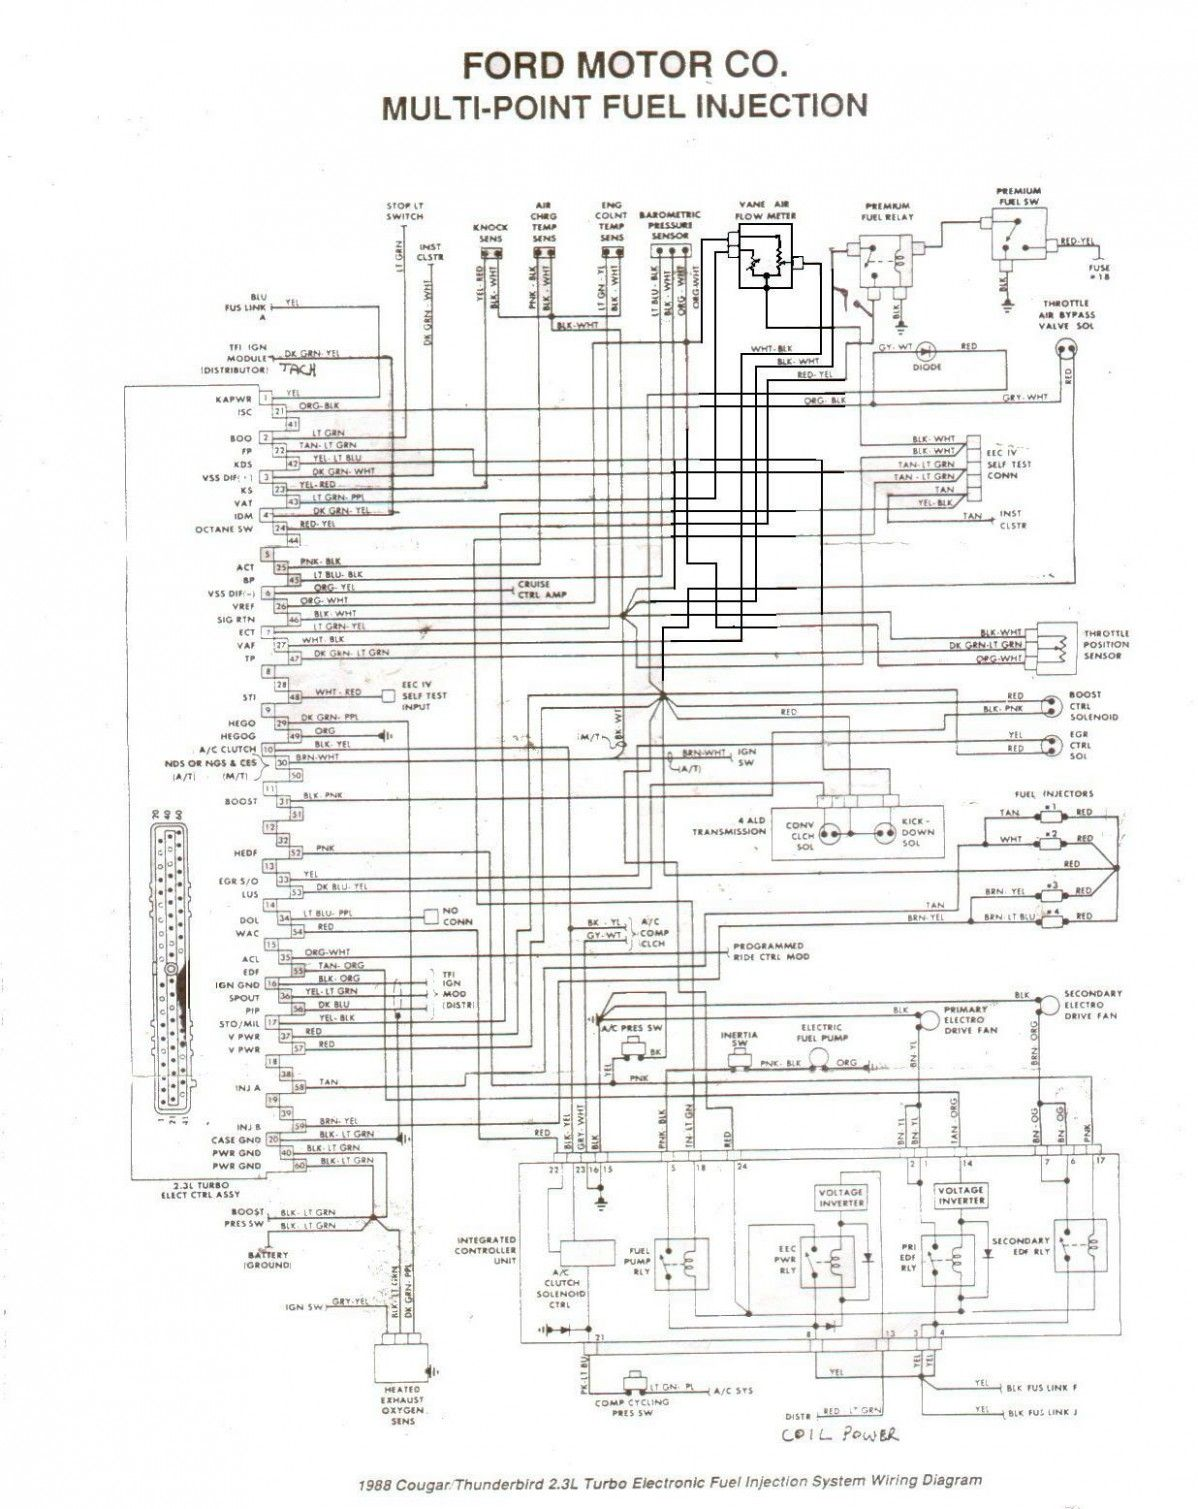 Engine Wiring Diagram For 5 Ford Ranger Gearbox Ford Ranger Ford Ranger Raptor Diagram